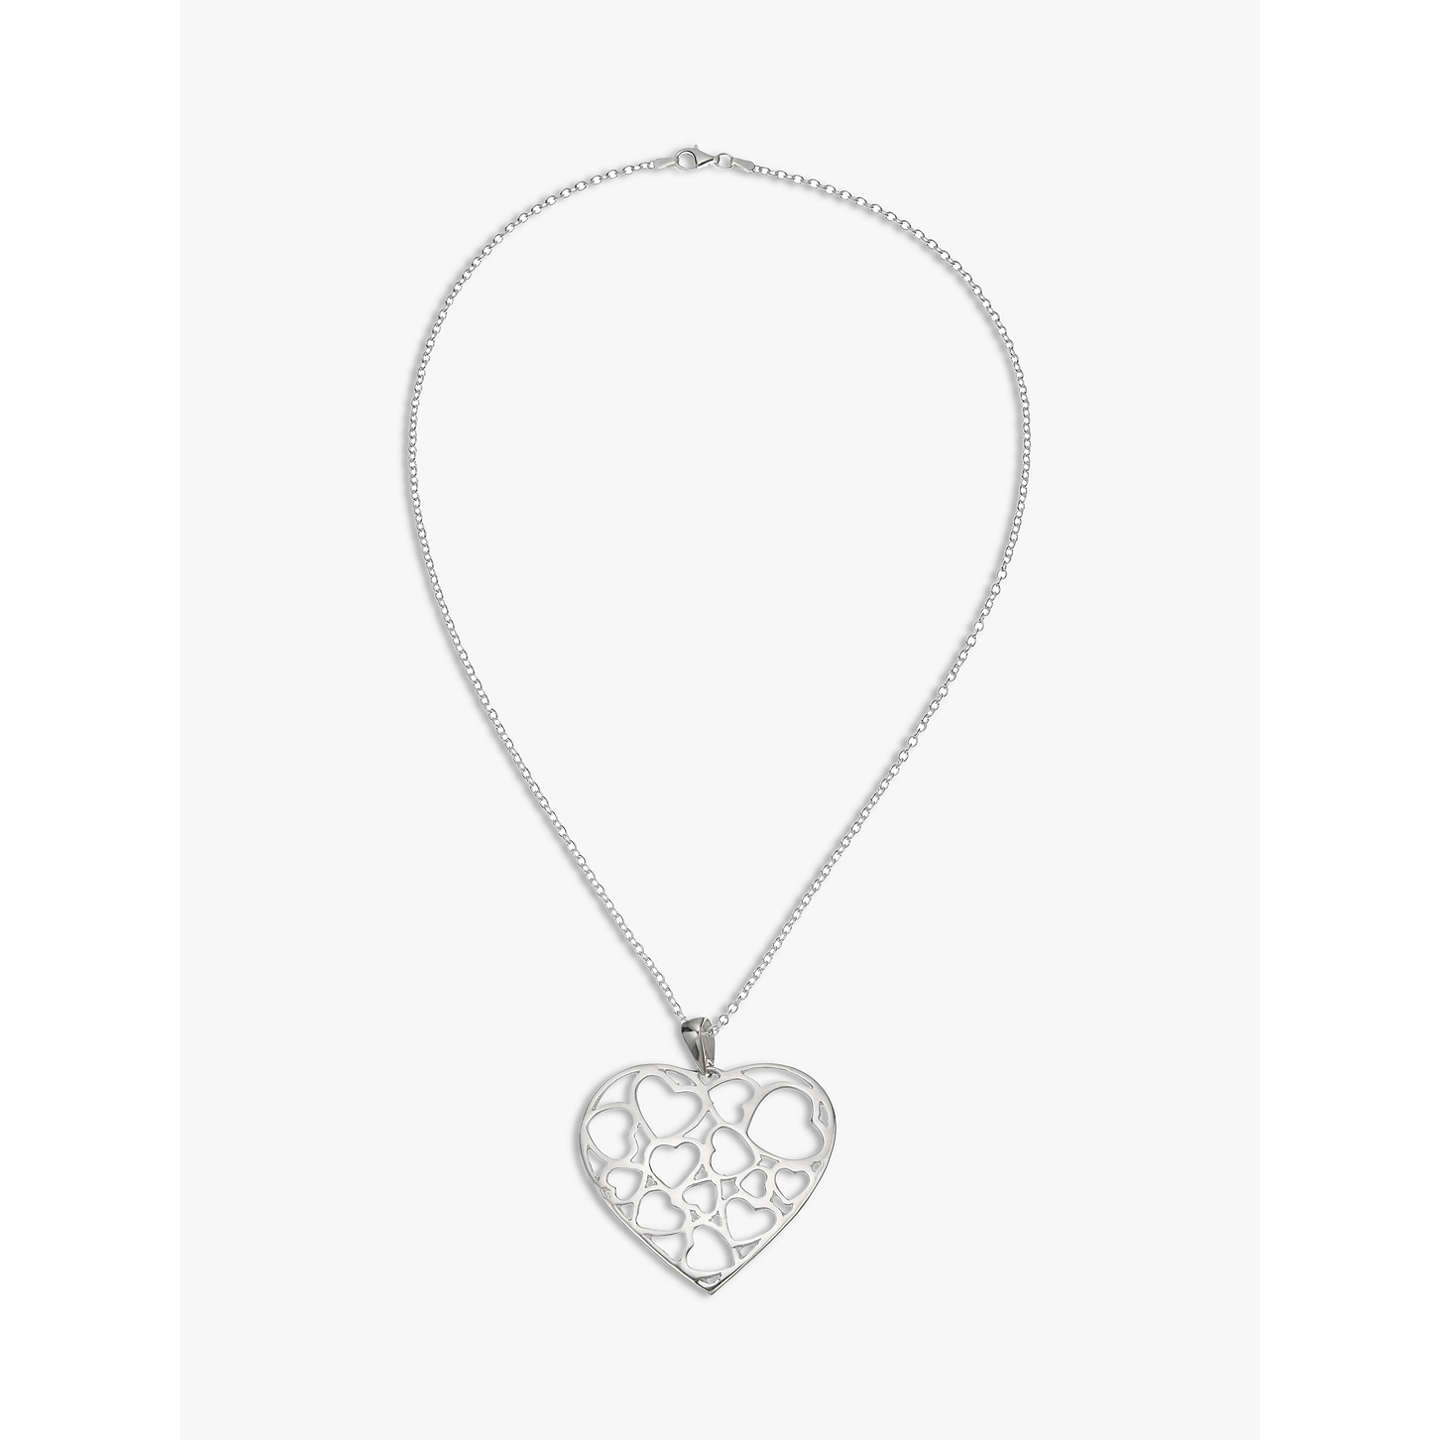 Andea large cut out heart pendant necklace silver at john lewis buyandea large cut out heart pendant necklace silver online at johnlewis mozeypictures Gallery